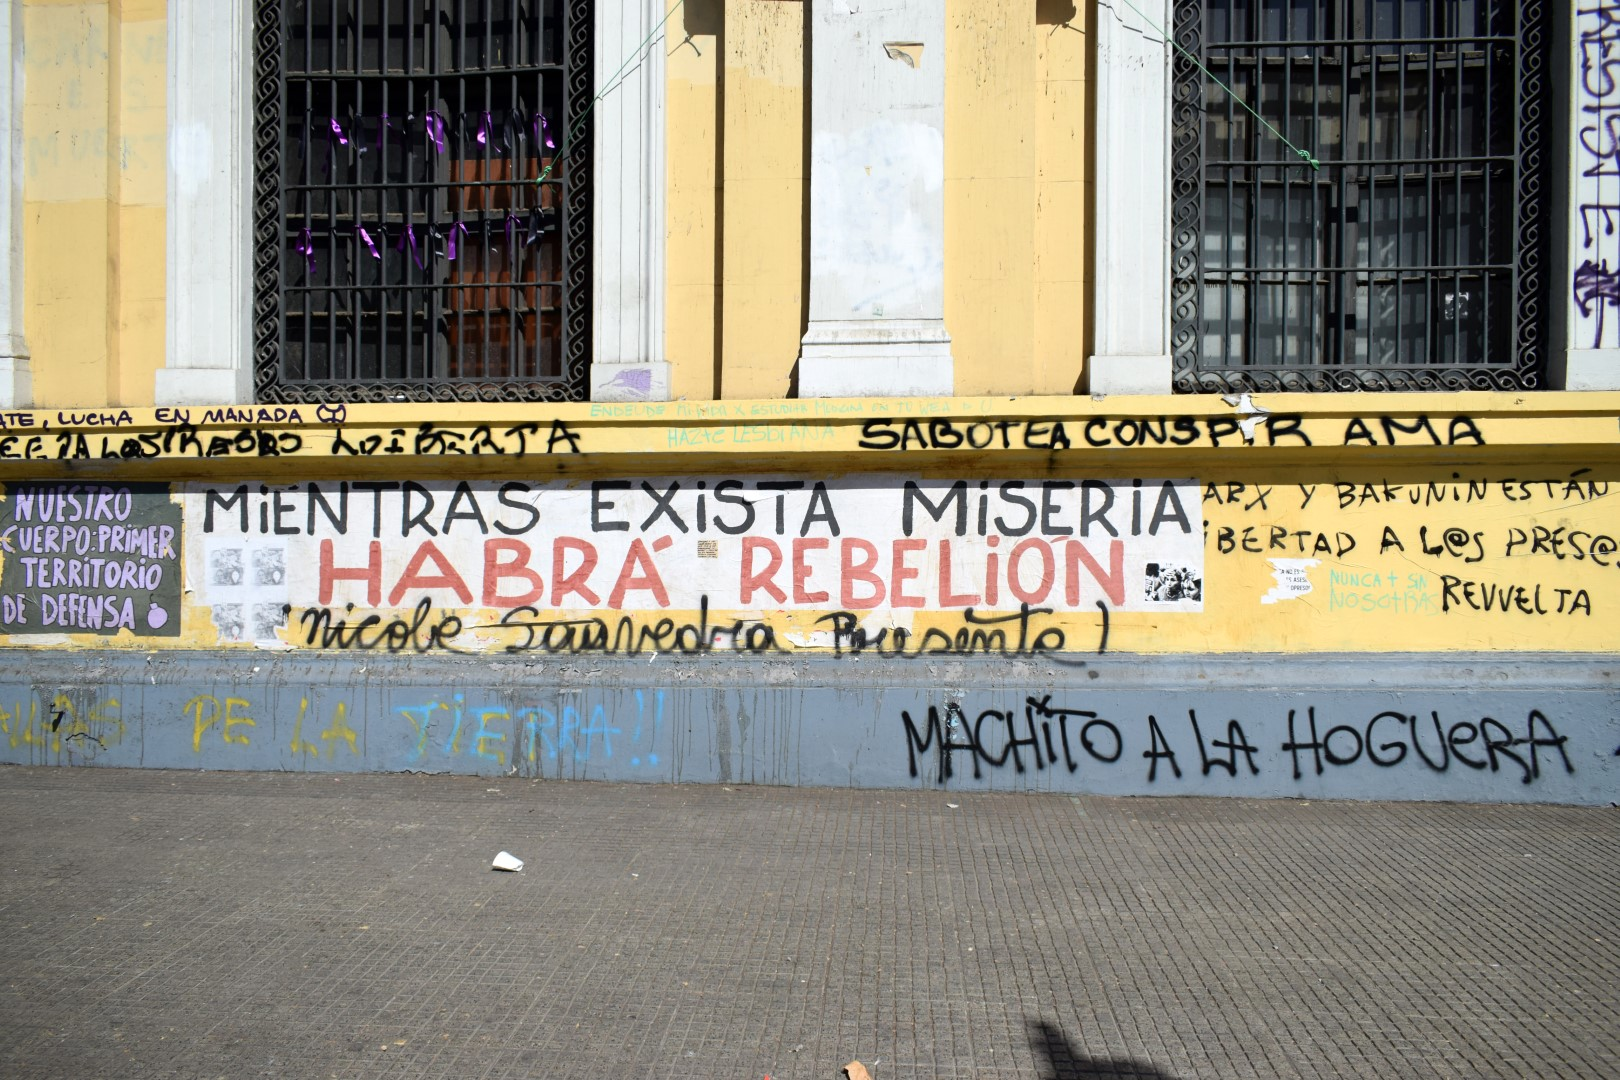 """As long as there will be poverty there will be rebellions"", Le Alameda, Santiago"